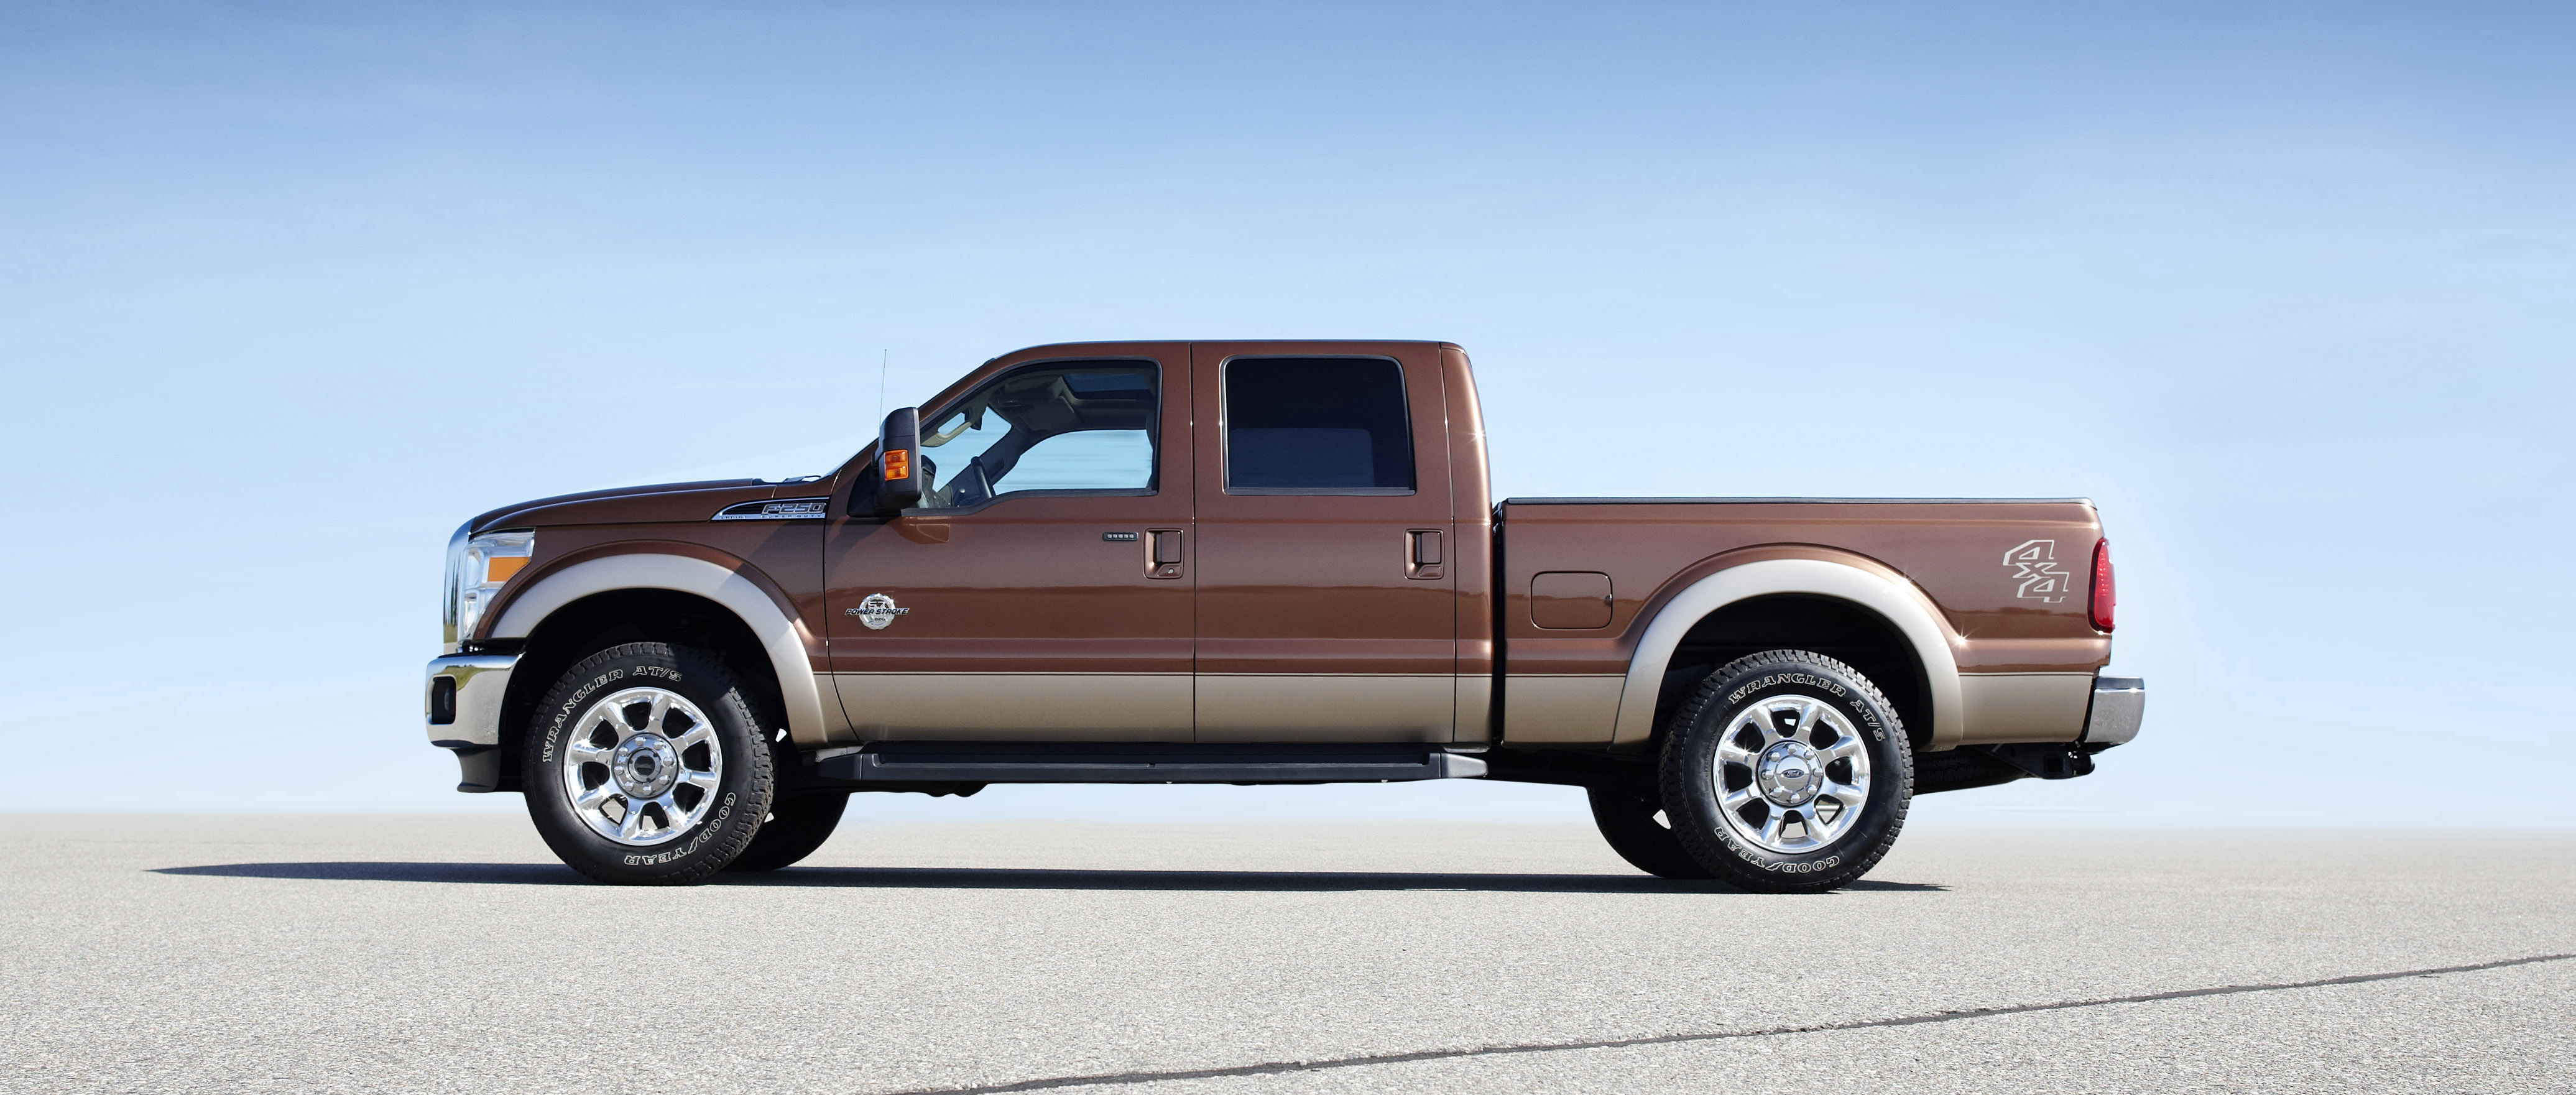 Ford f250 lariat super duty 11